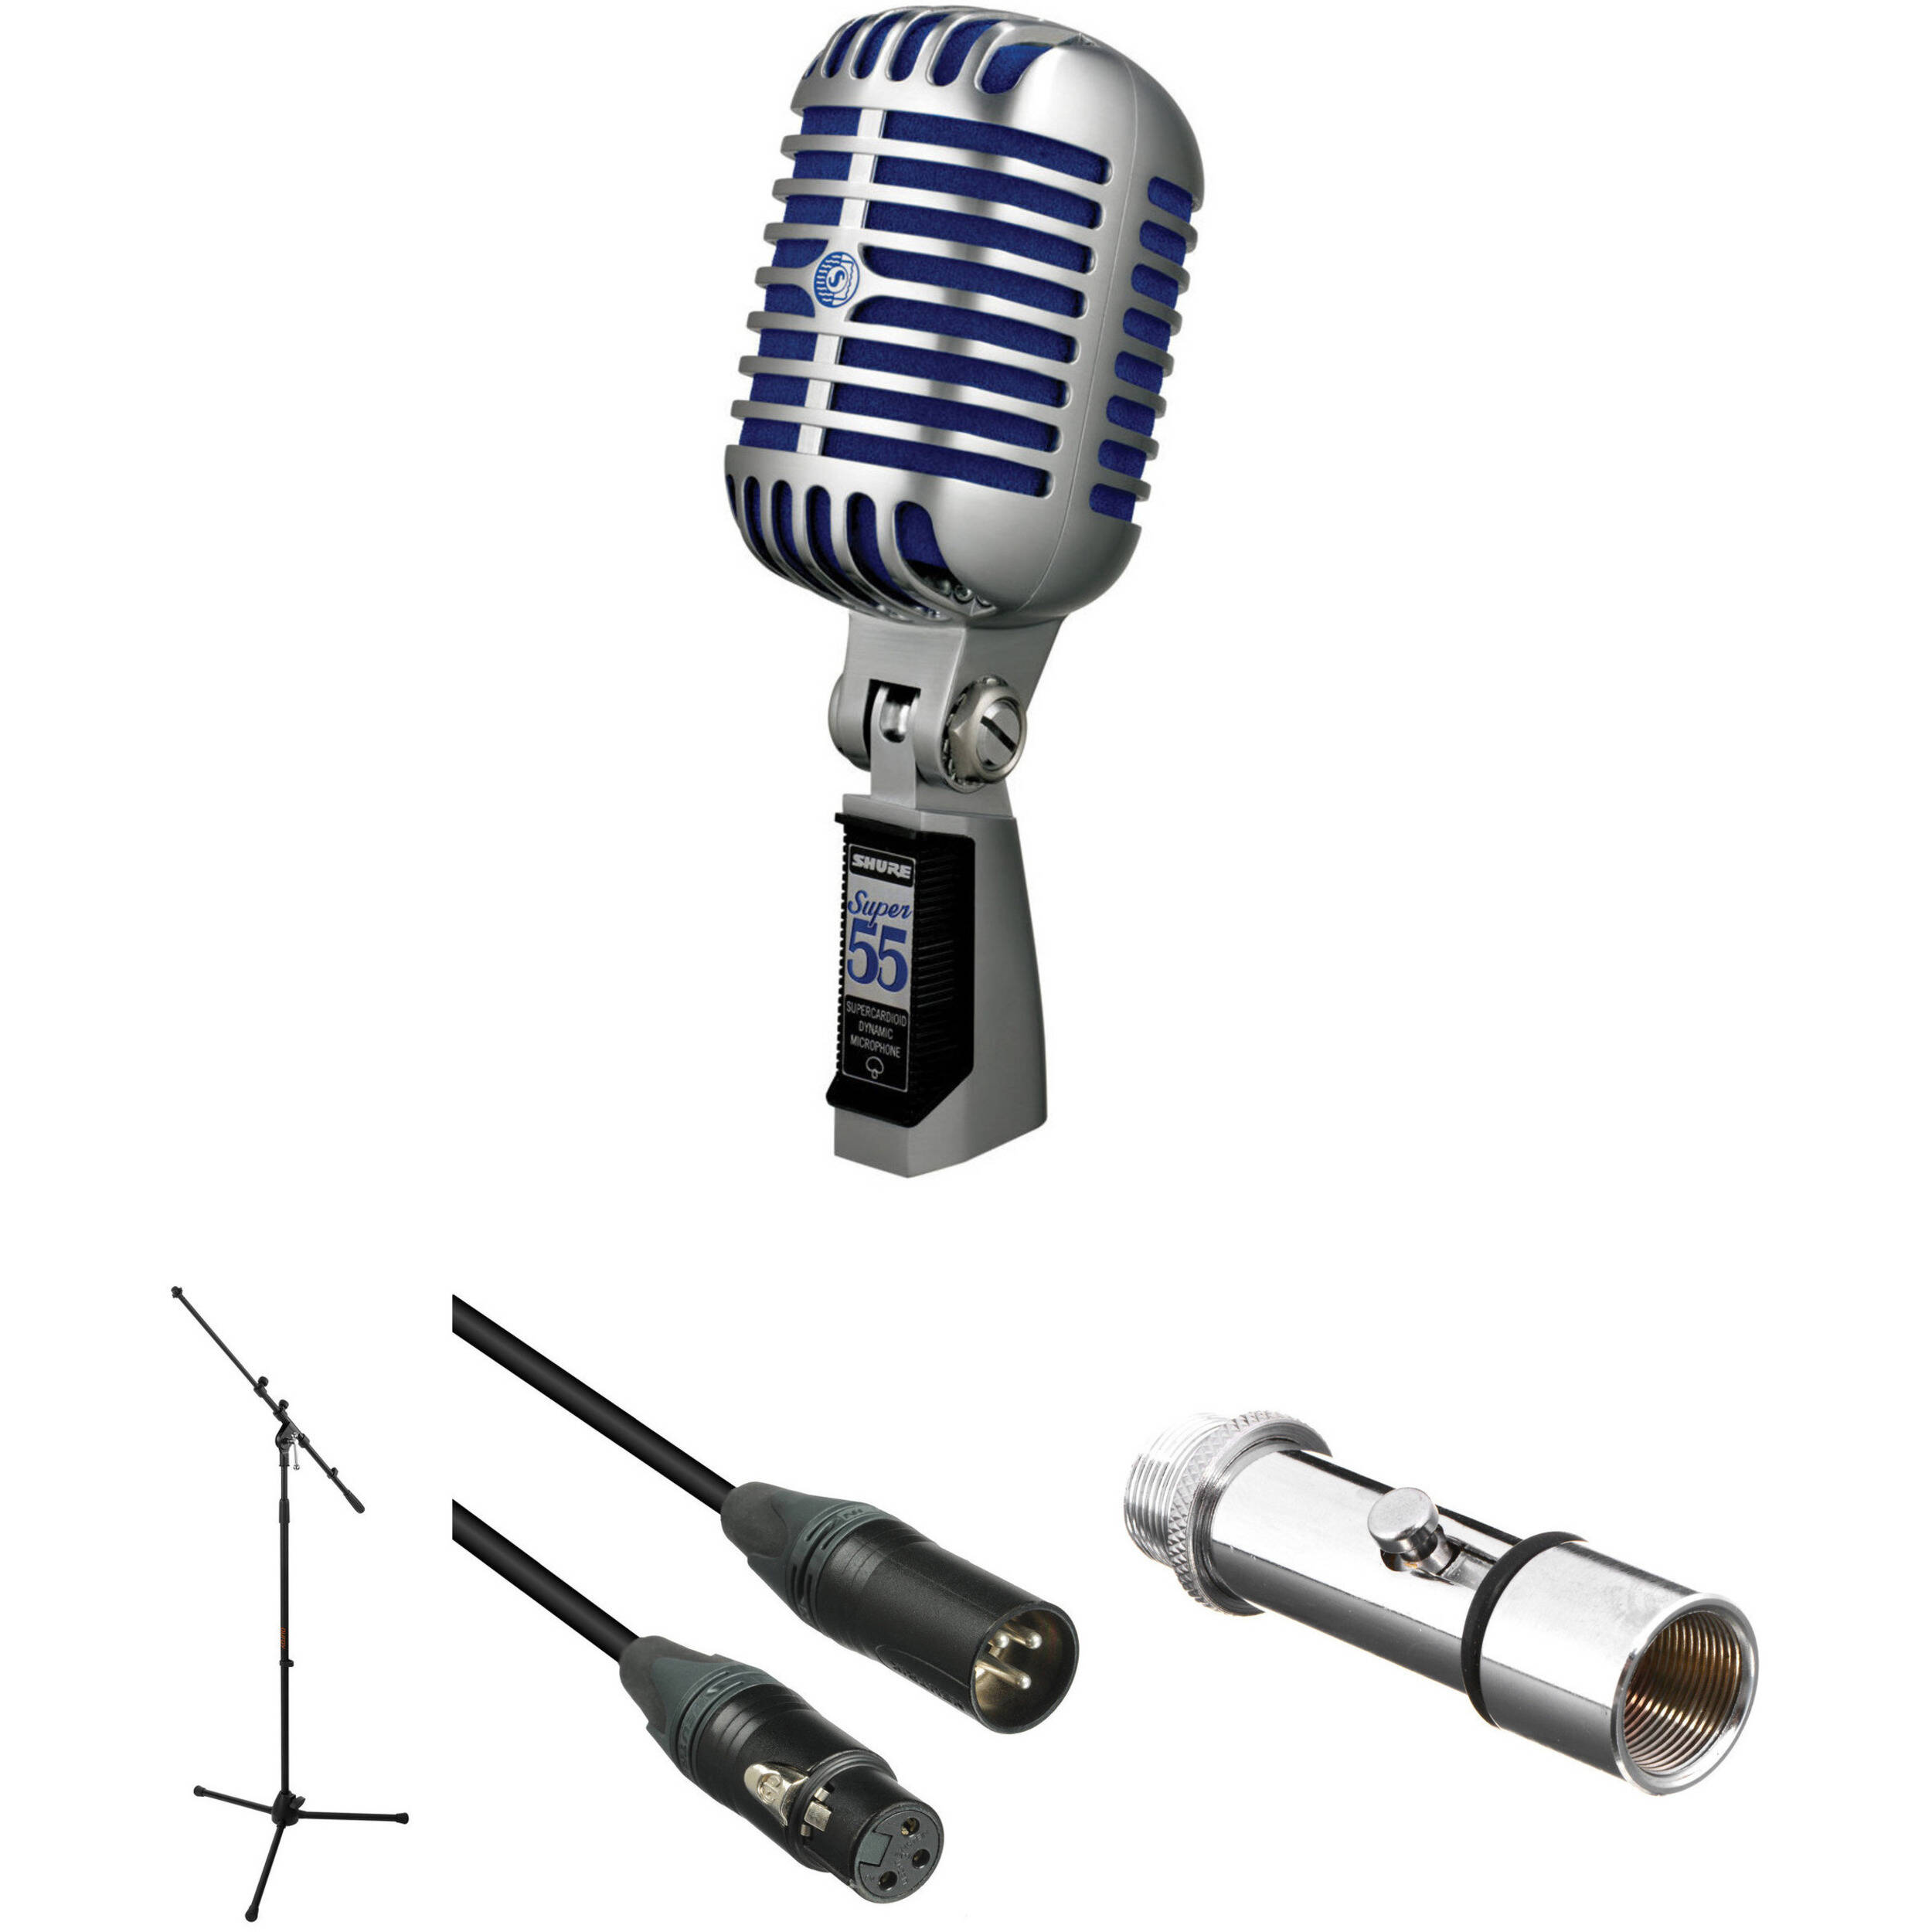 shure super 55 deluxe vocal microphone kit b h photo video. Black Bedroom Furniture Sets. Home Design Ideas